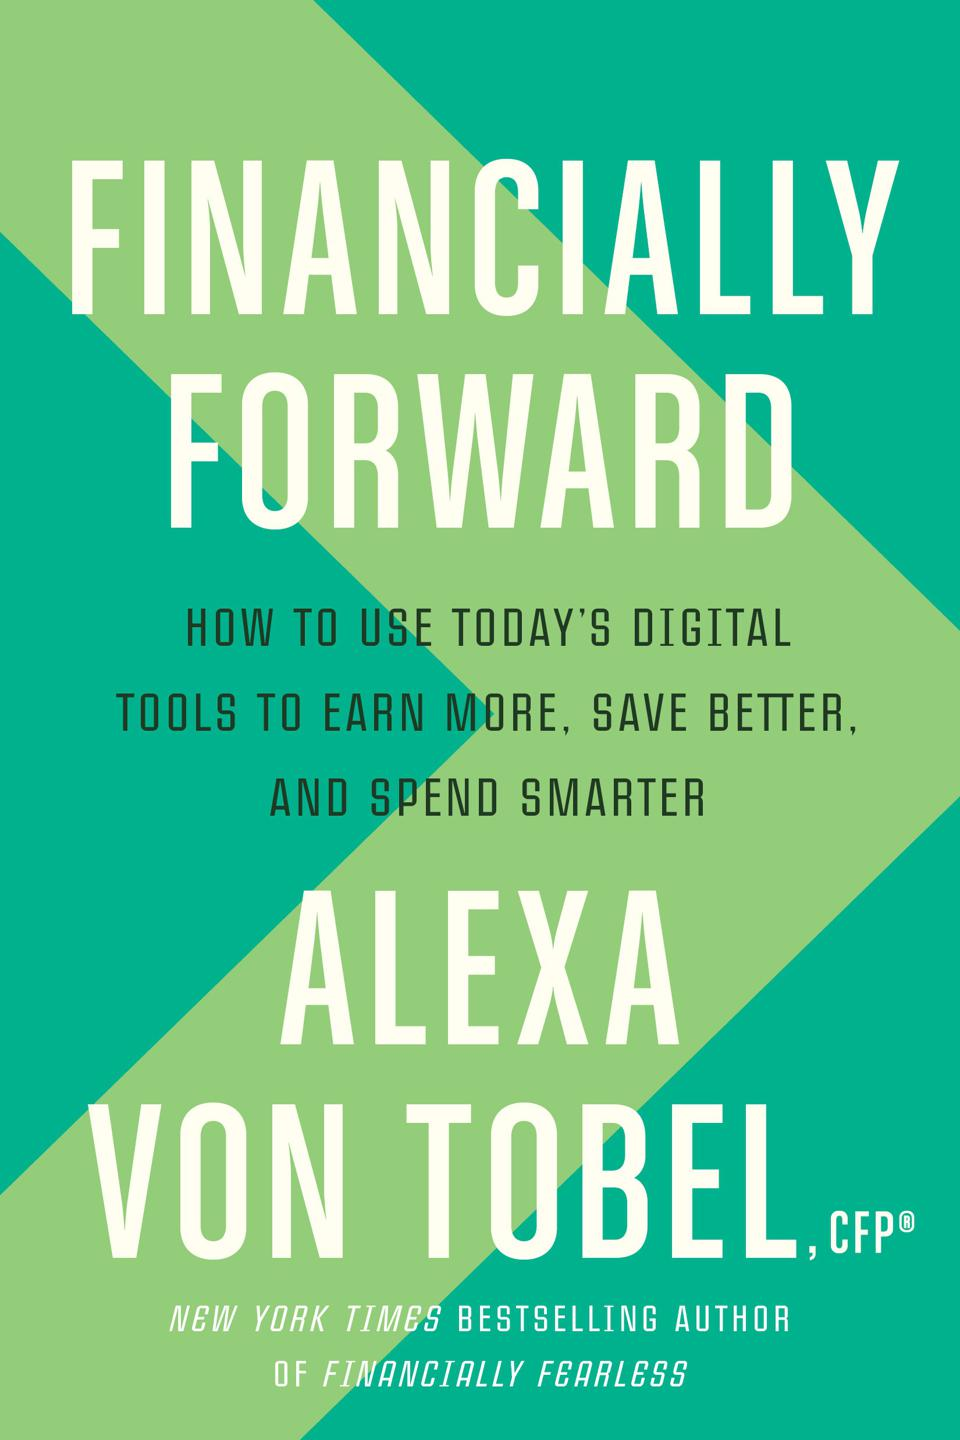 Financially Forward by Alexa von Tobel